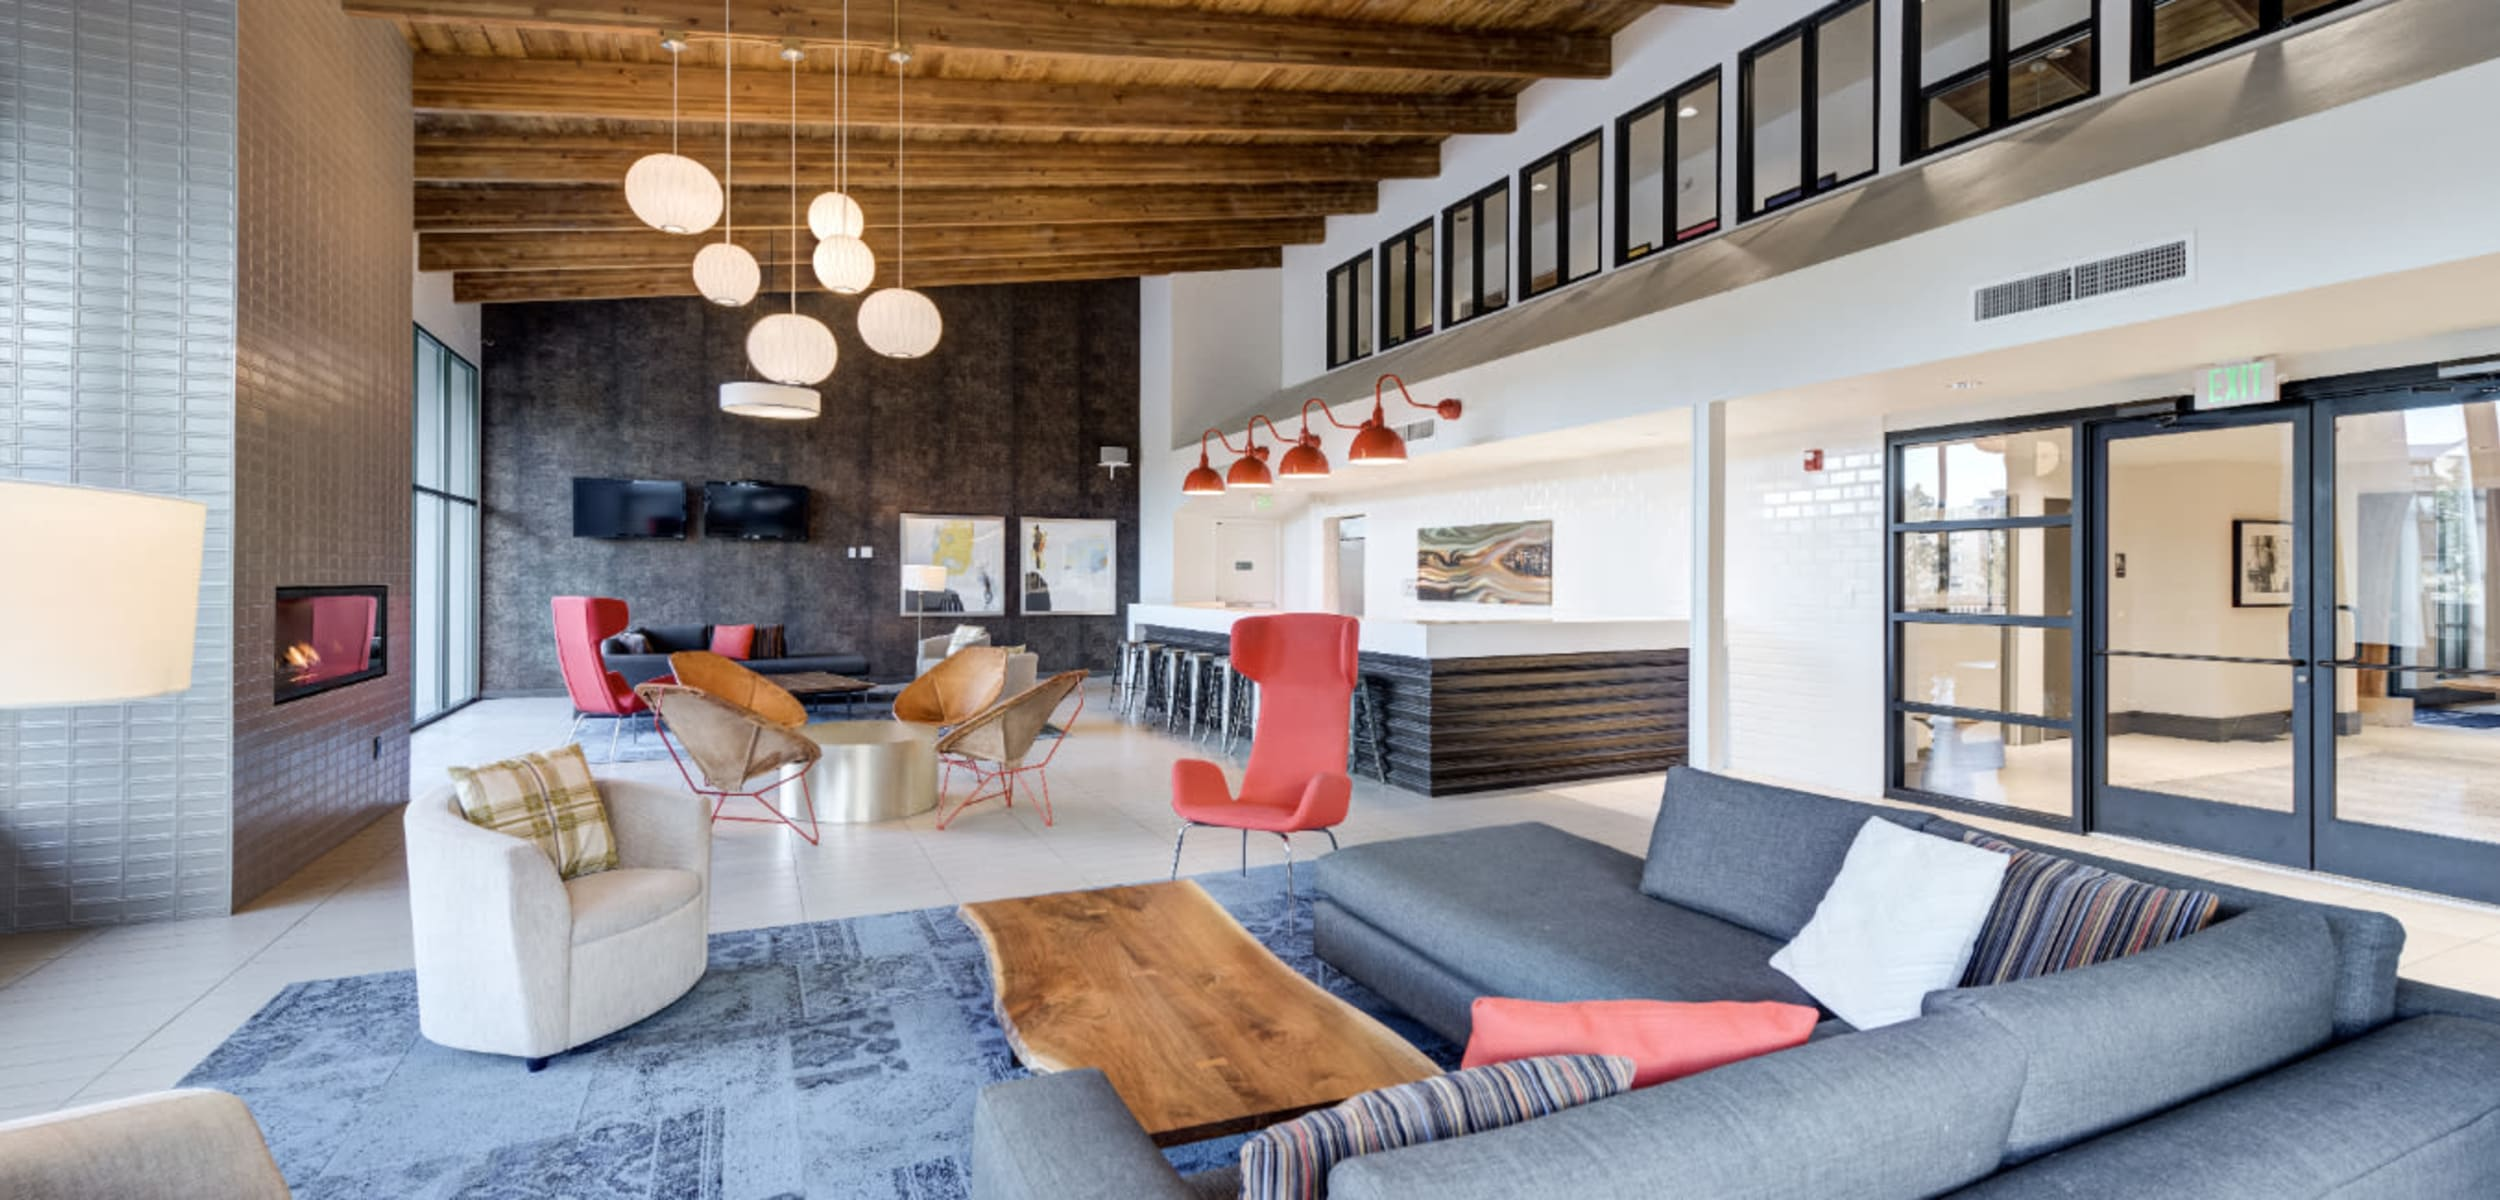 Bright and open community clubhouse with lounge area and fireplace at Ashford Belmar in Lakewood, Colorado